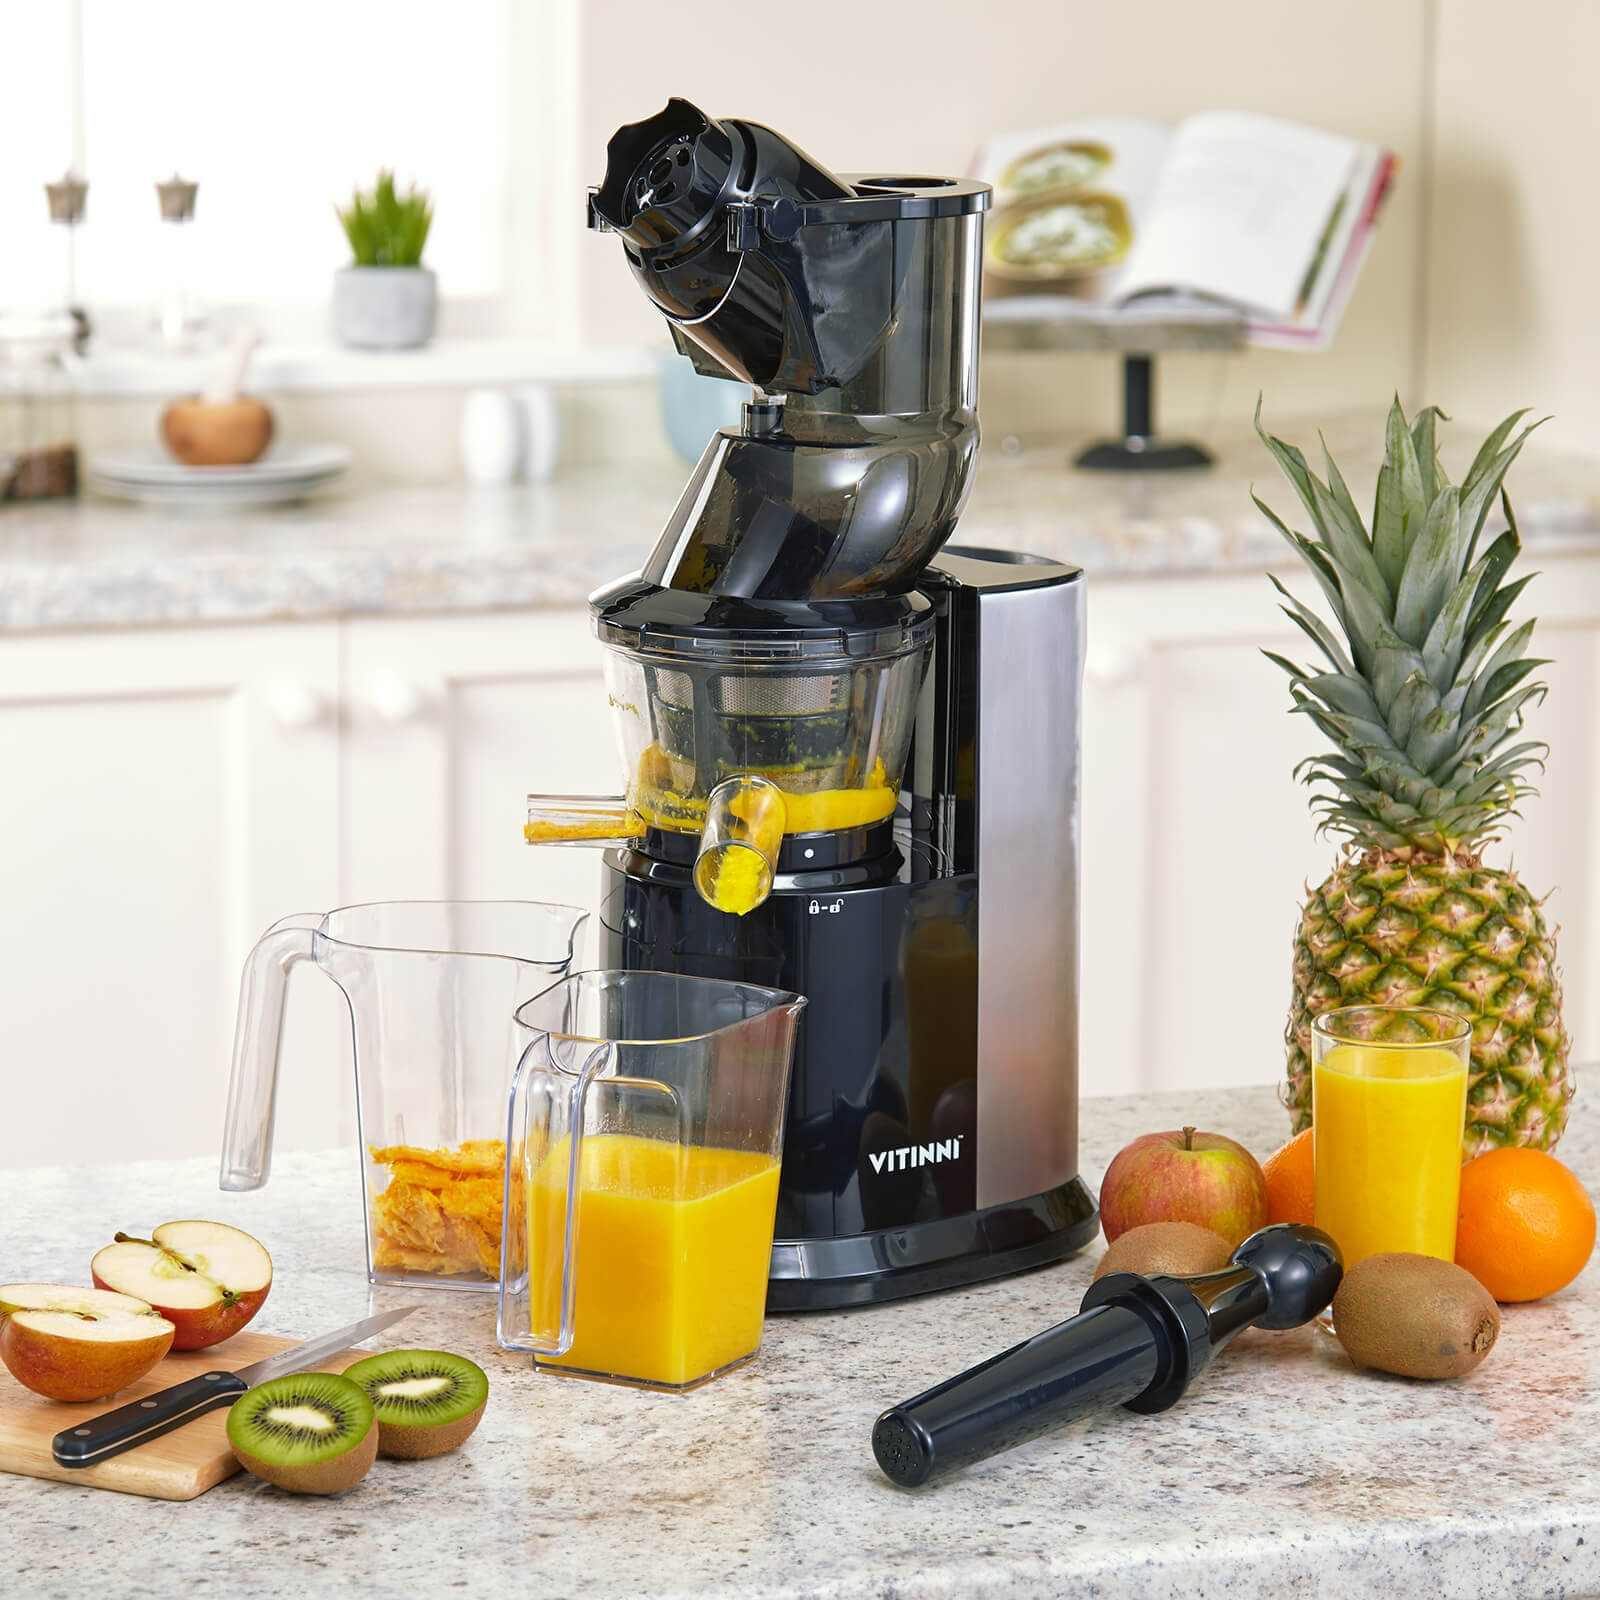 Advantages of Low Speed Juicers